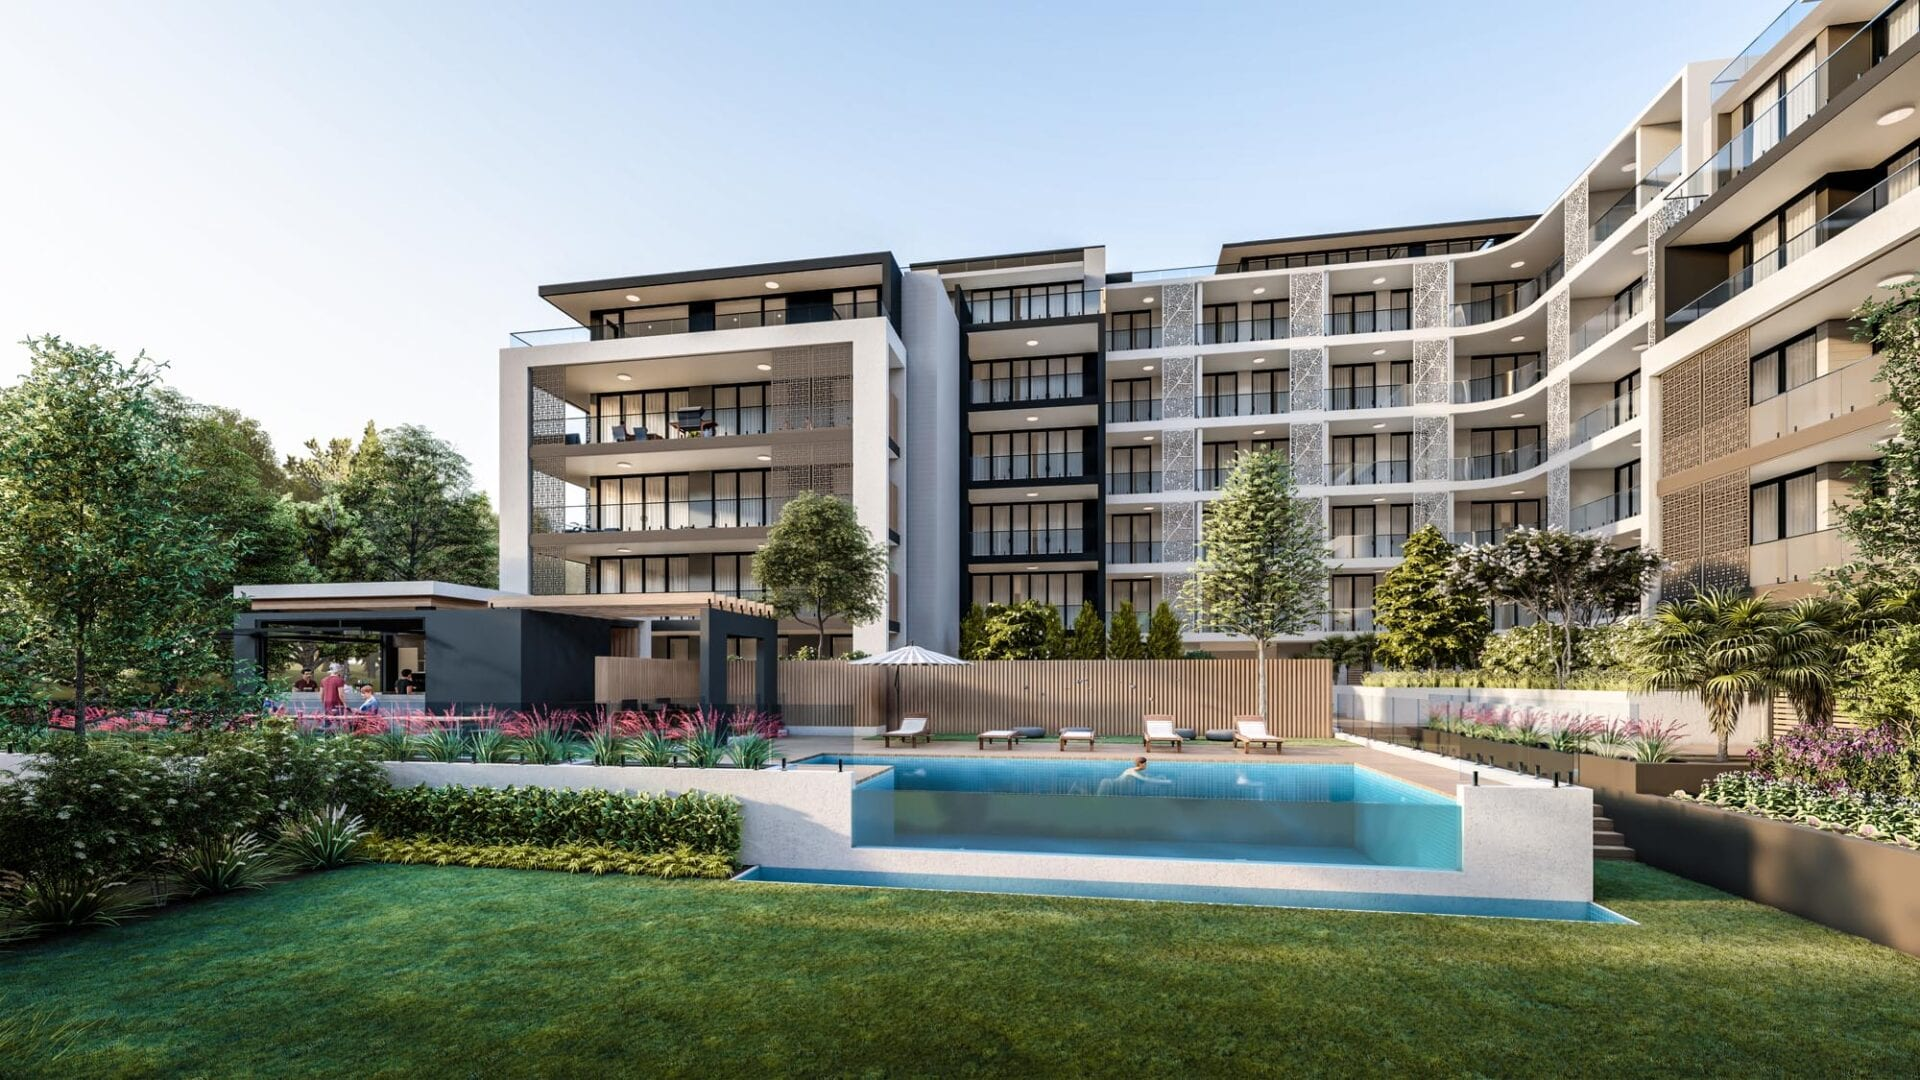 LUXURY APARTMENT DESIGN WILL ALLOW BUYERS TO PERSONALISE